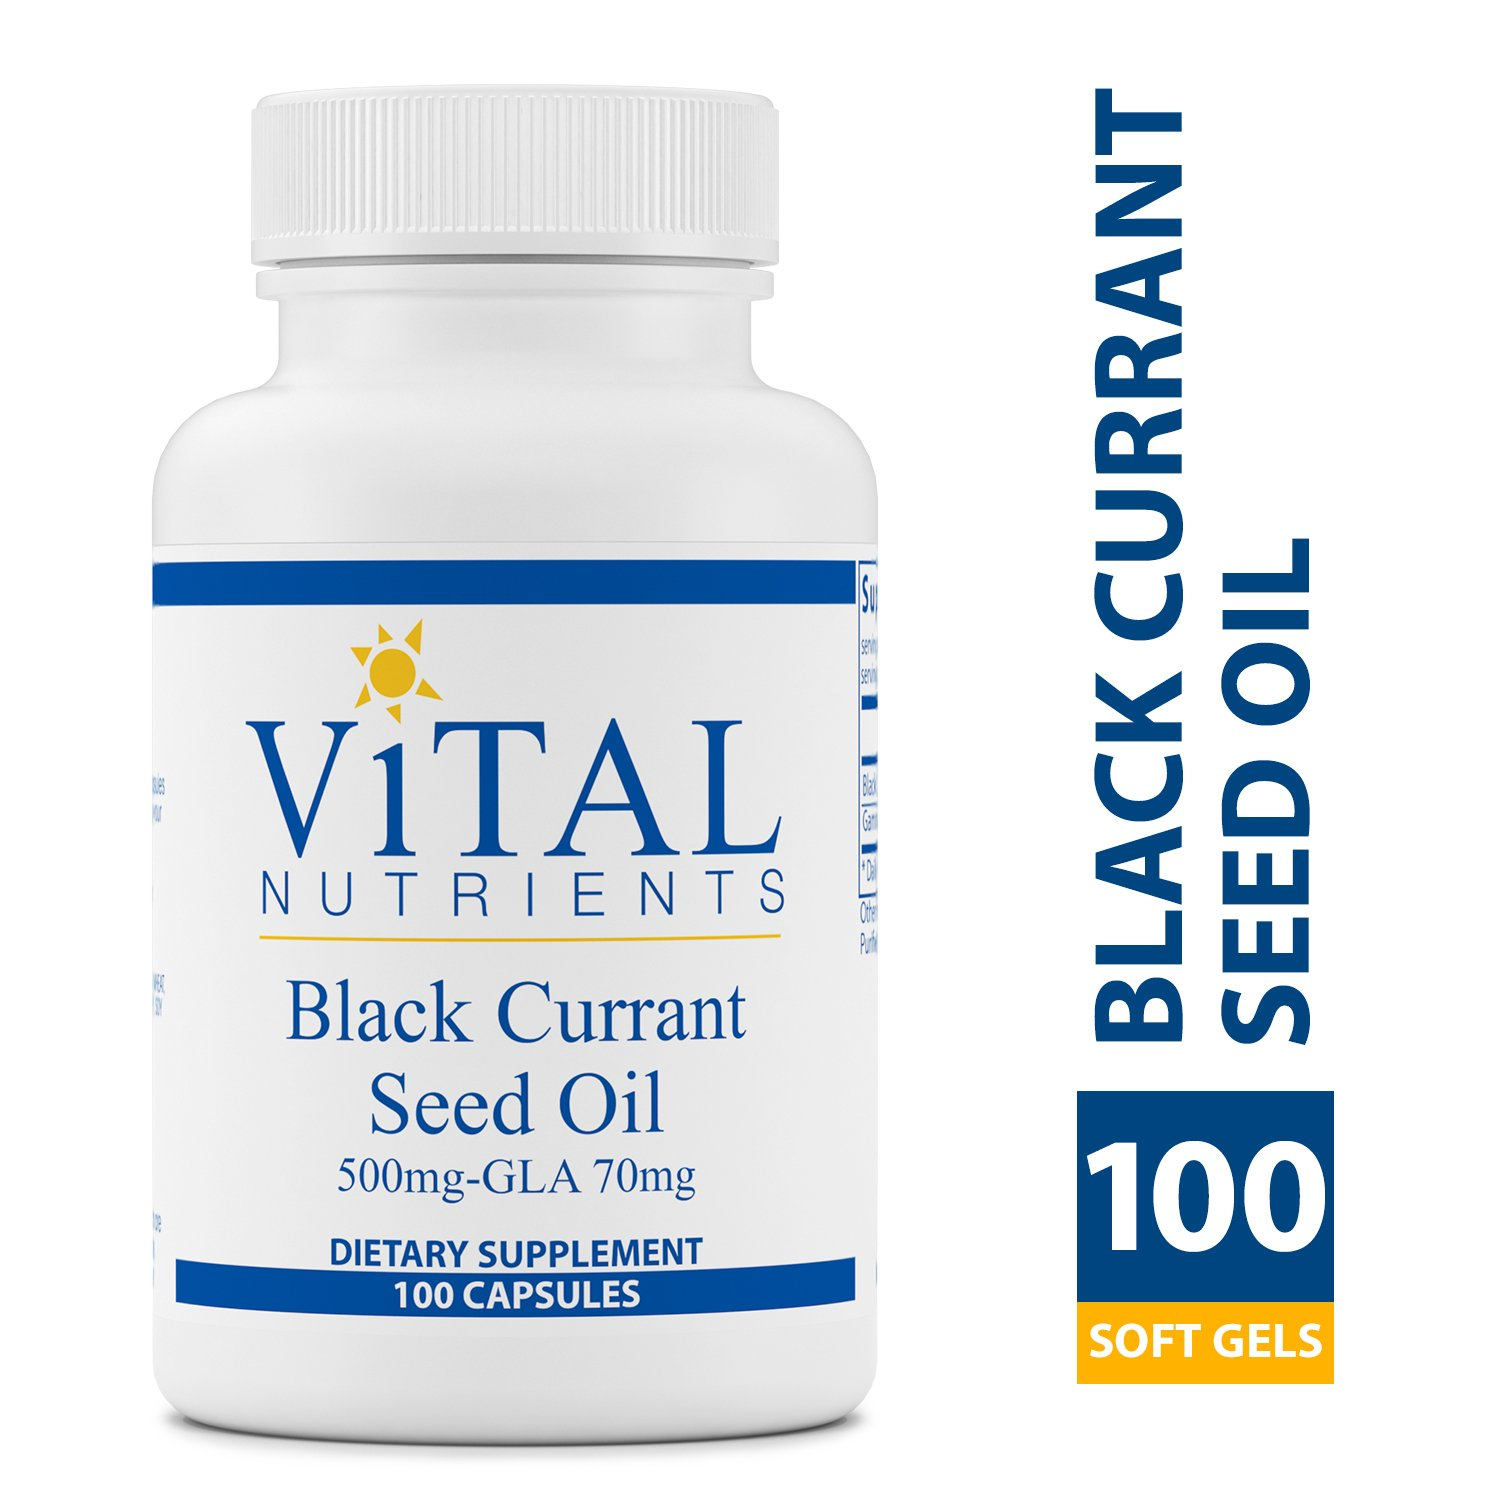 Vital Nutrients - Black Currant Seed Oil - Essential Omega 6 Fatty Acid - 100 Softgel Capsules